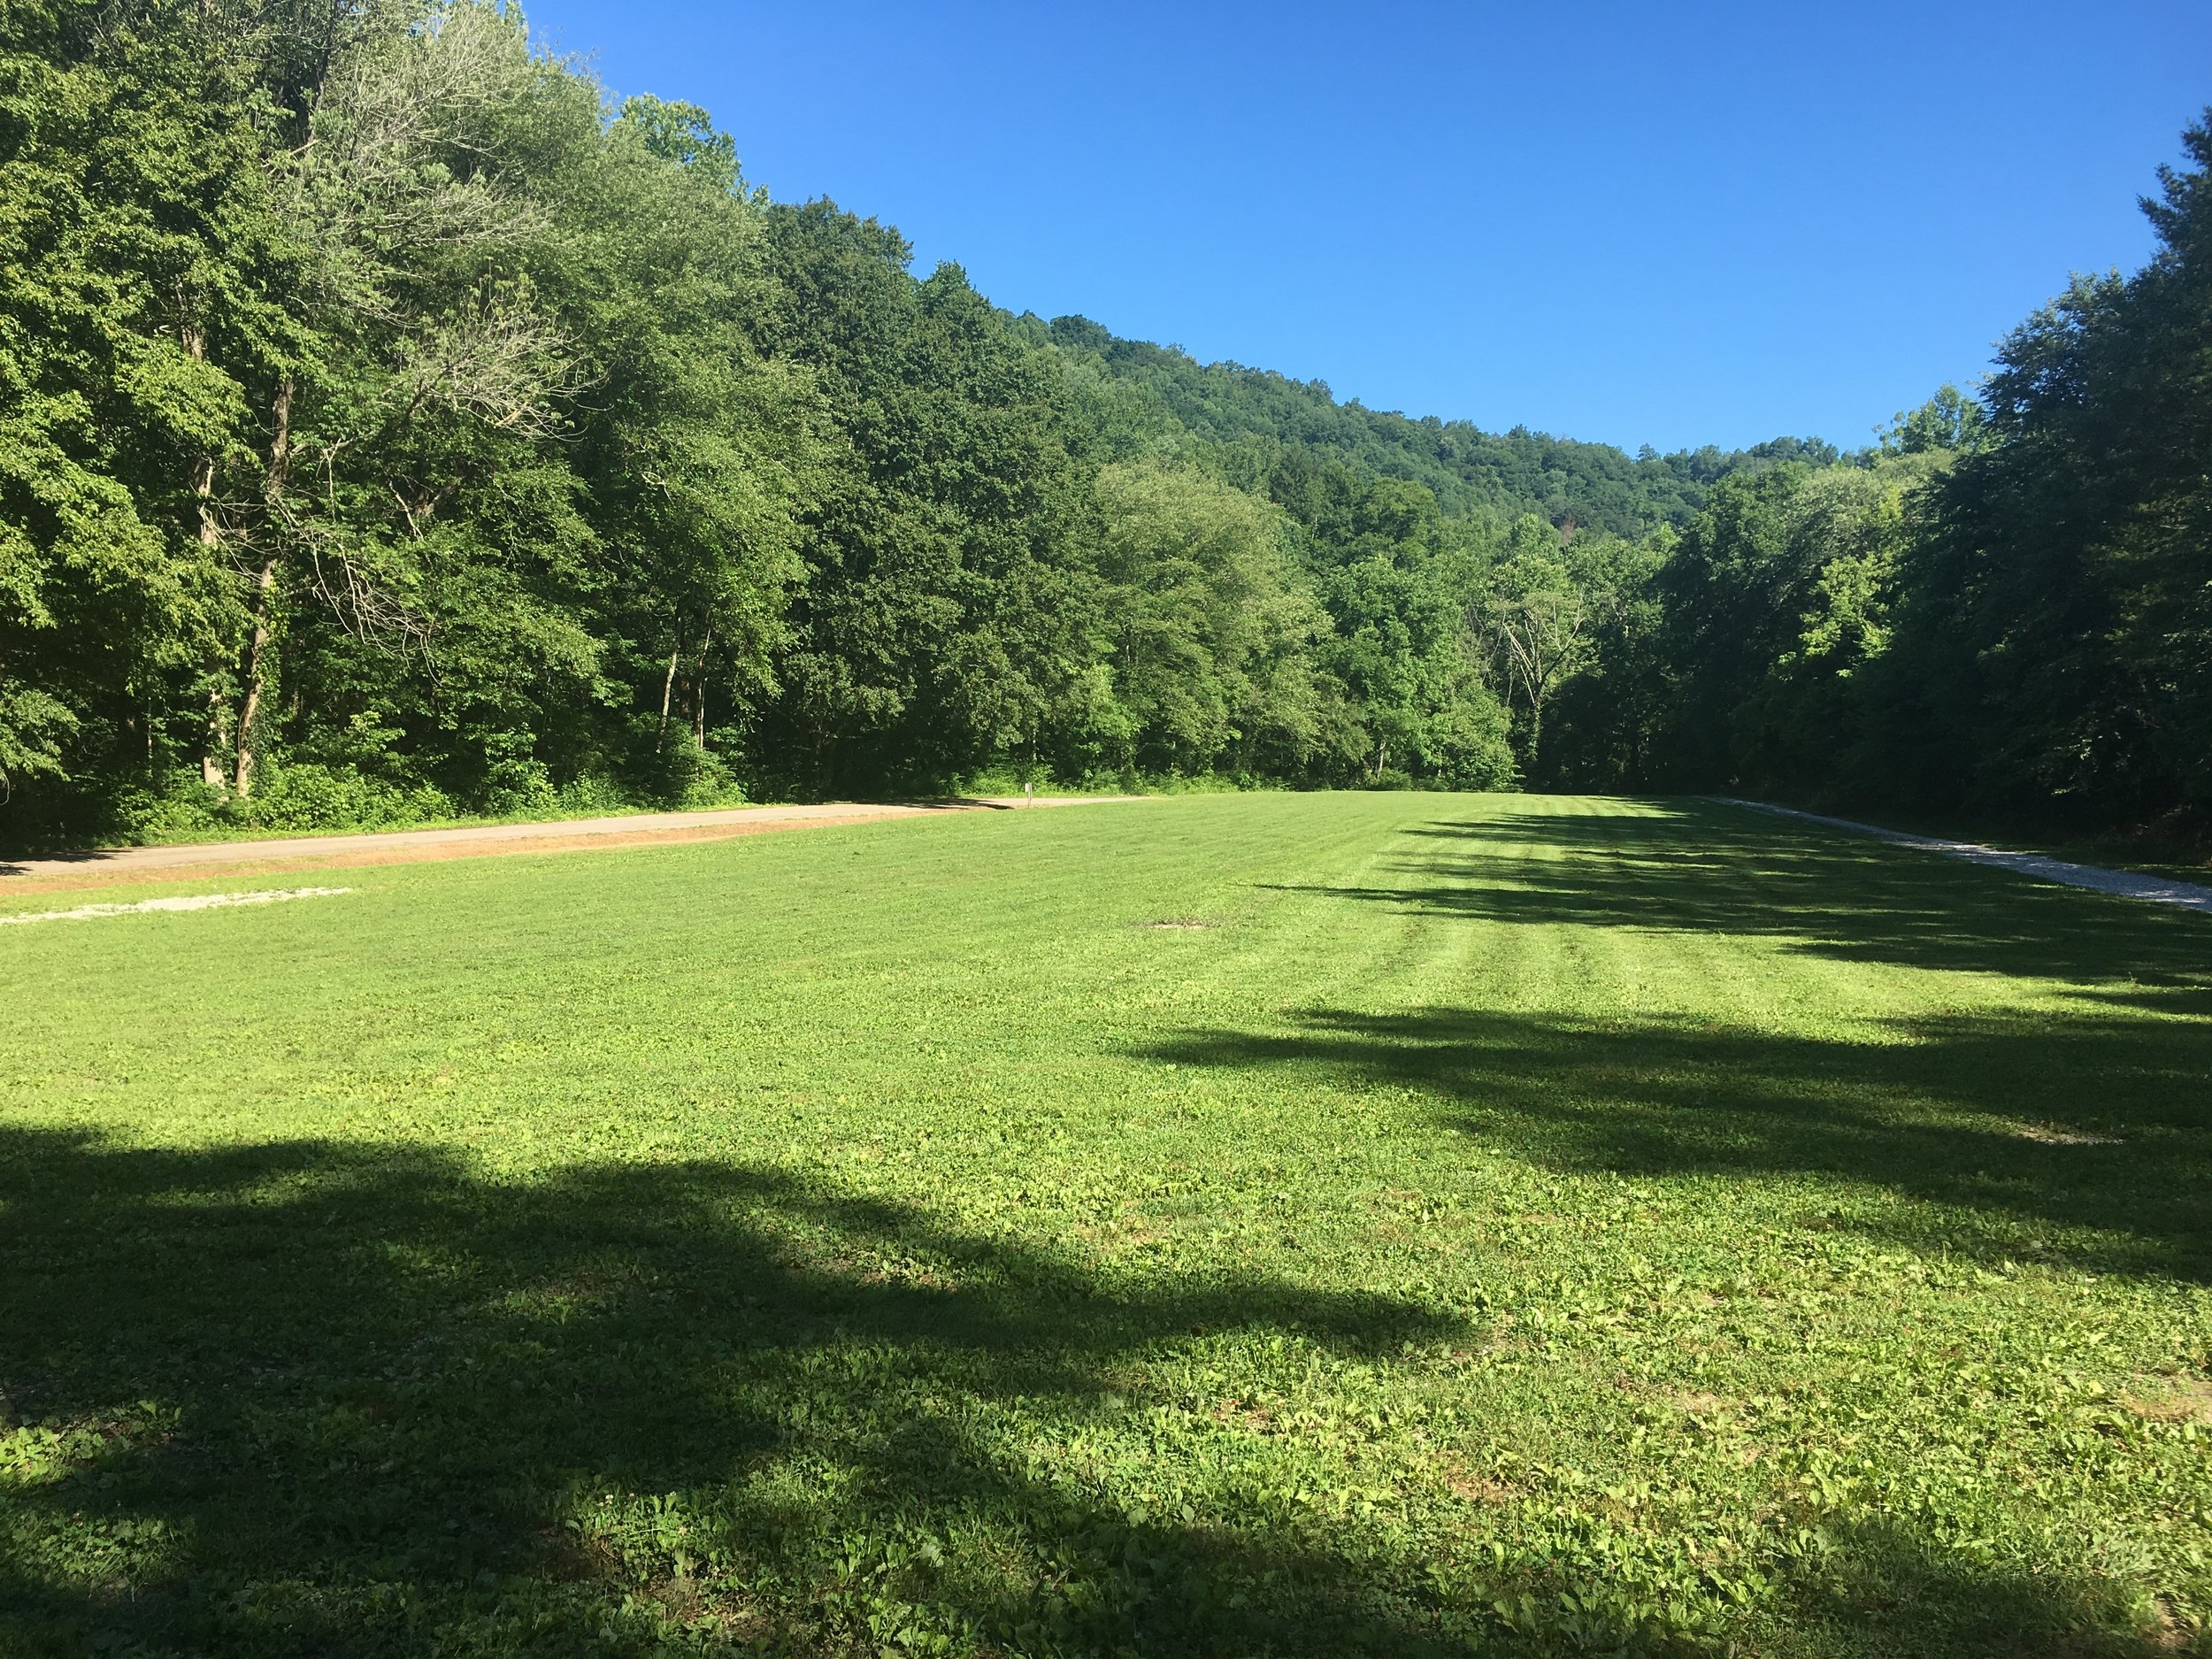 The freshly mowed Peabody Trailhead: where we will start and finish the Redbird Crest 100K